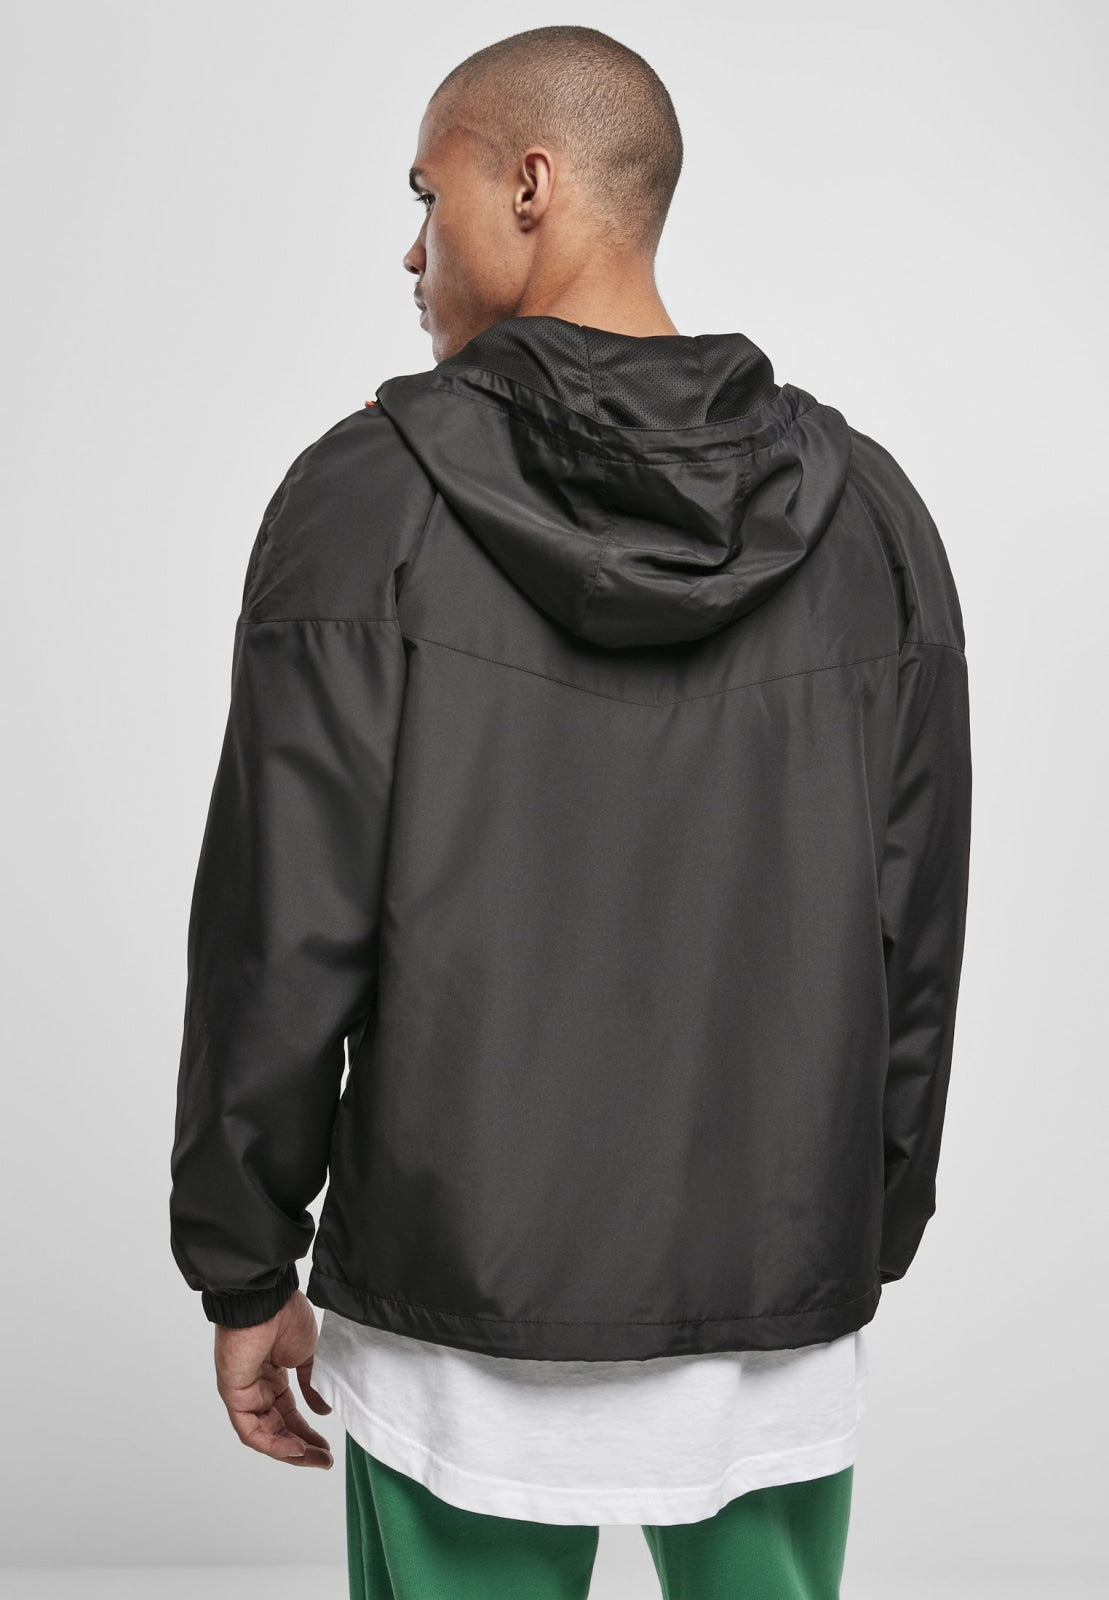 Recycled Windrunner Jacket Light Urban Classics